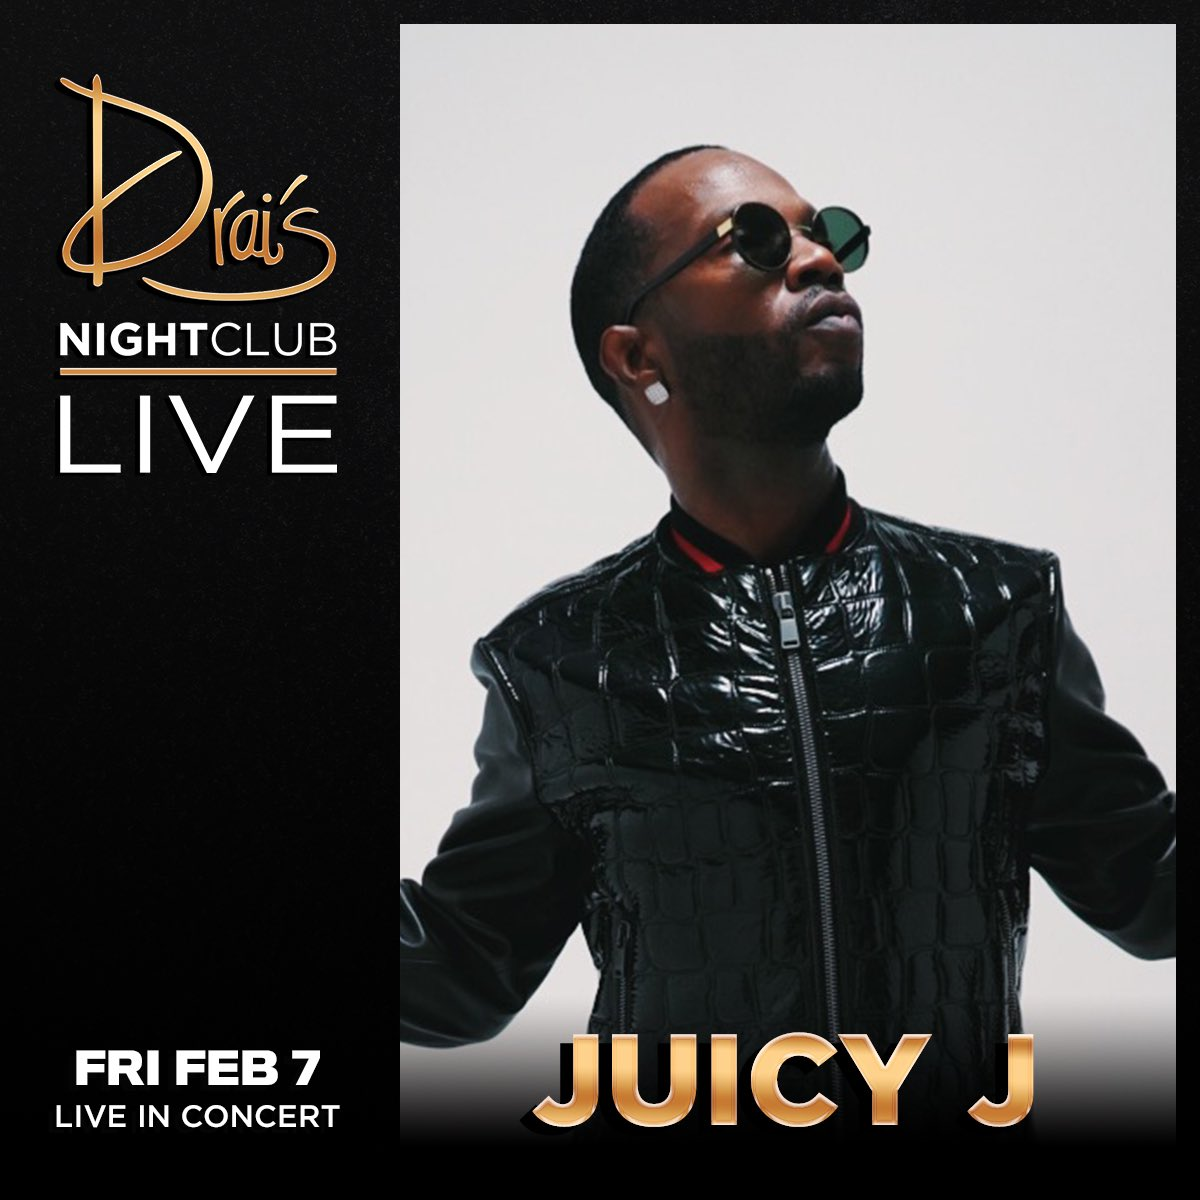 @DraisLV feb 7th I'm performing! pull up drinks on me for tickets link in bio